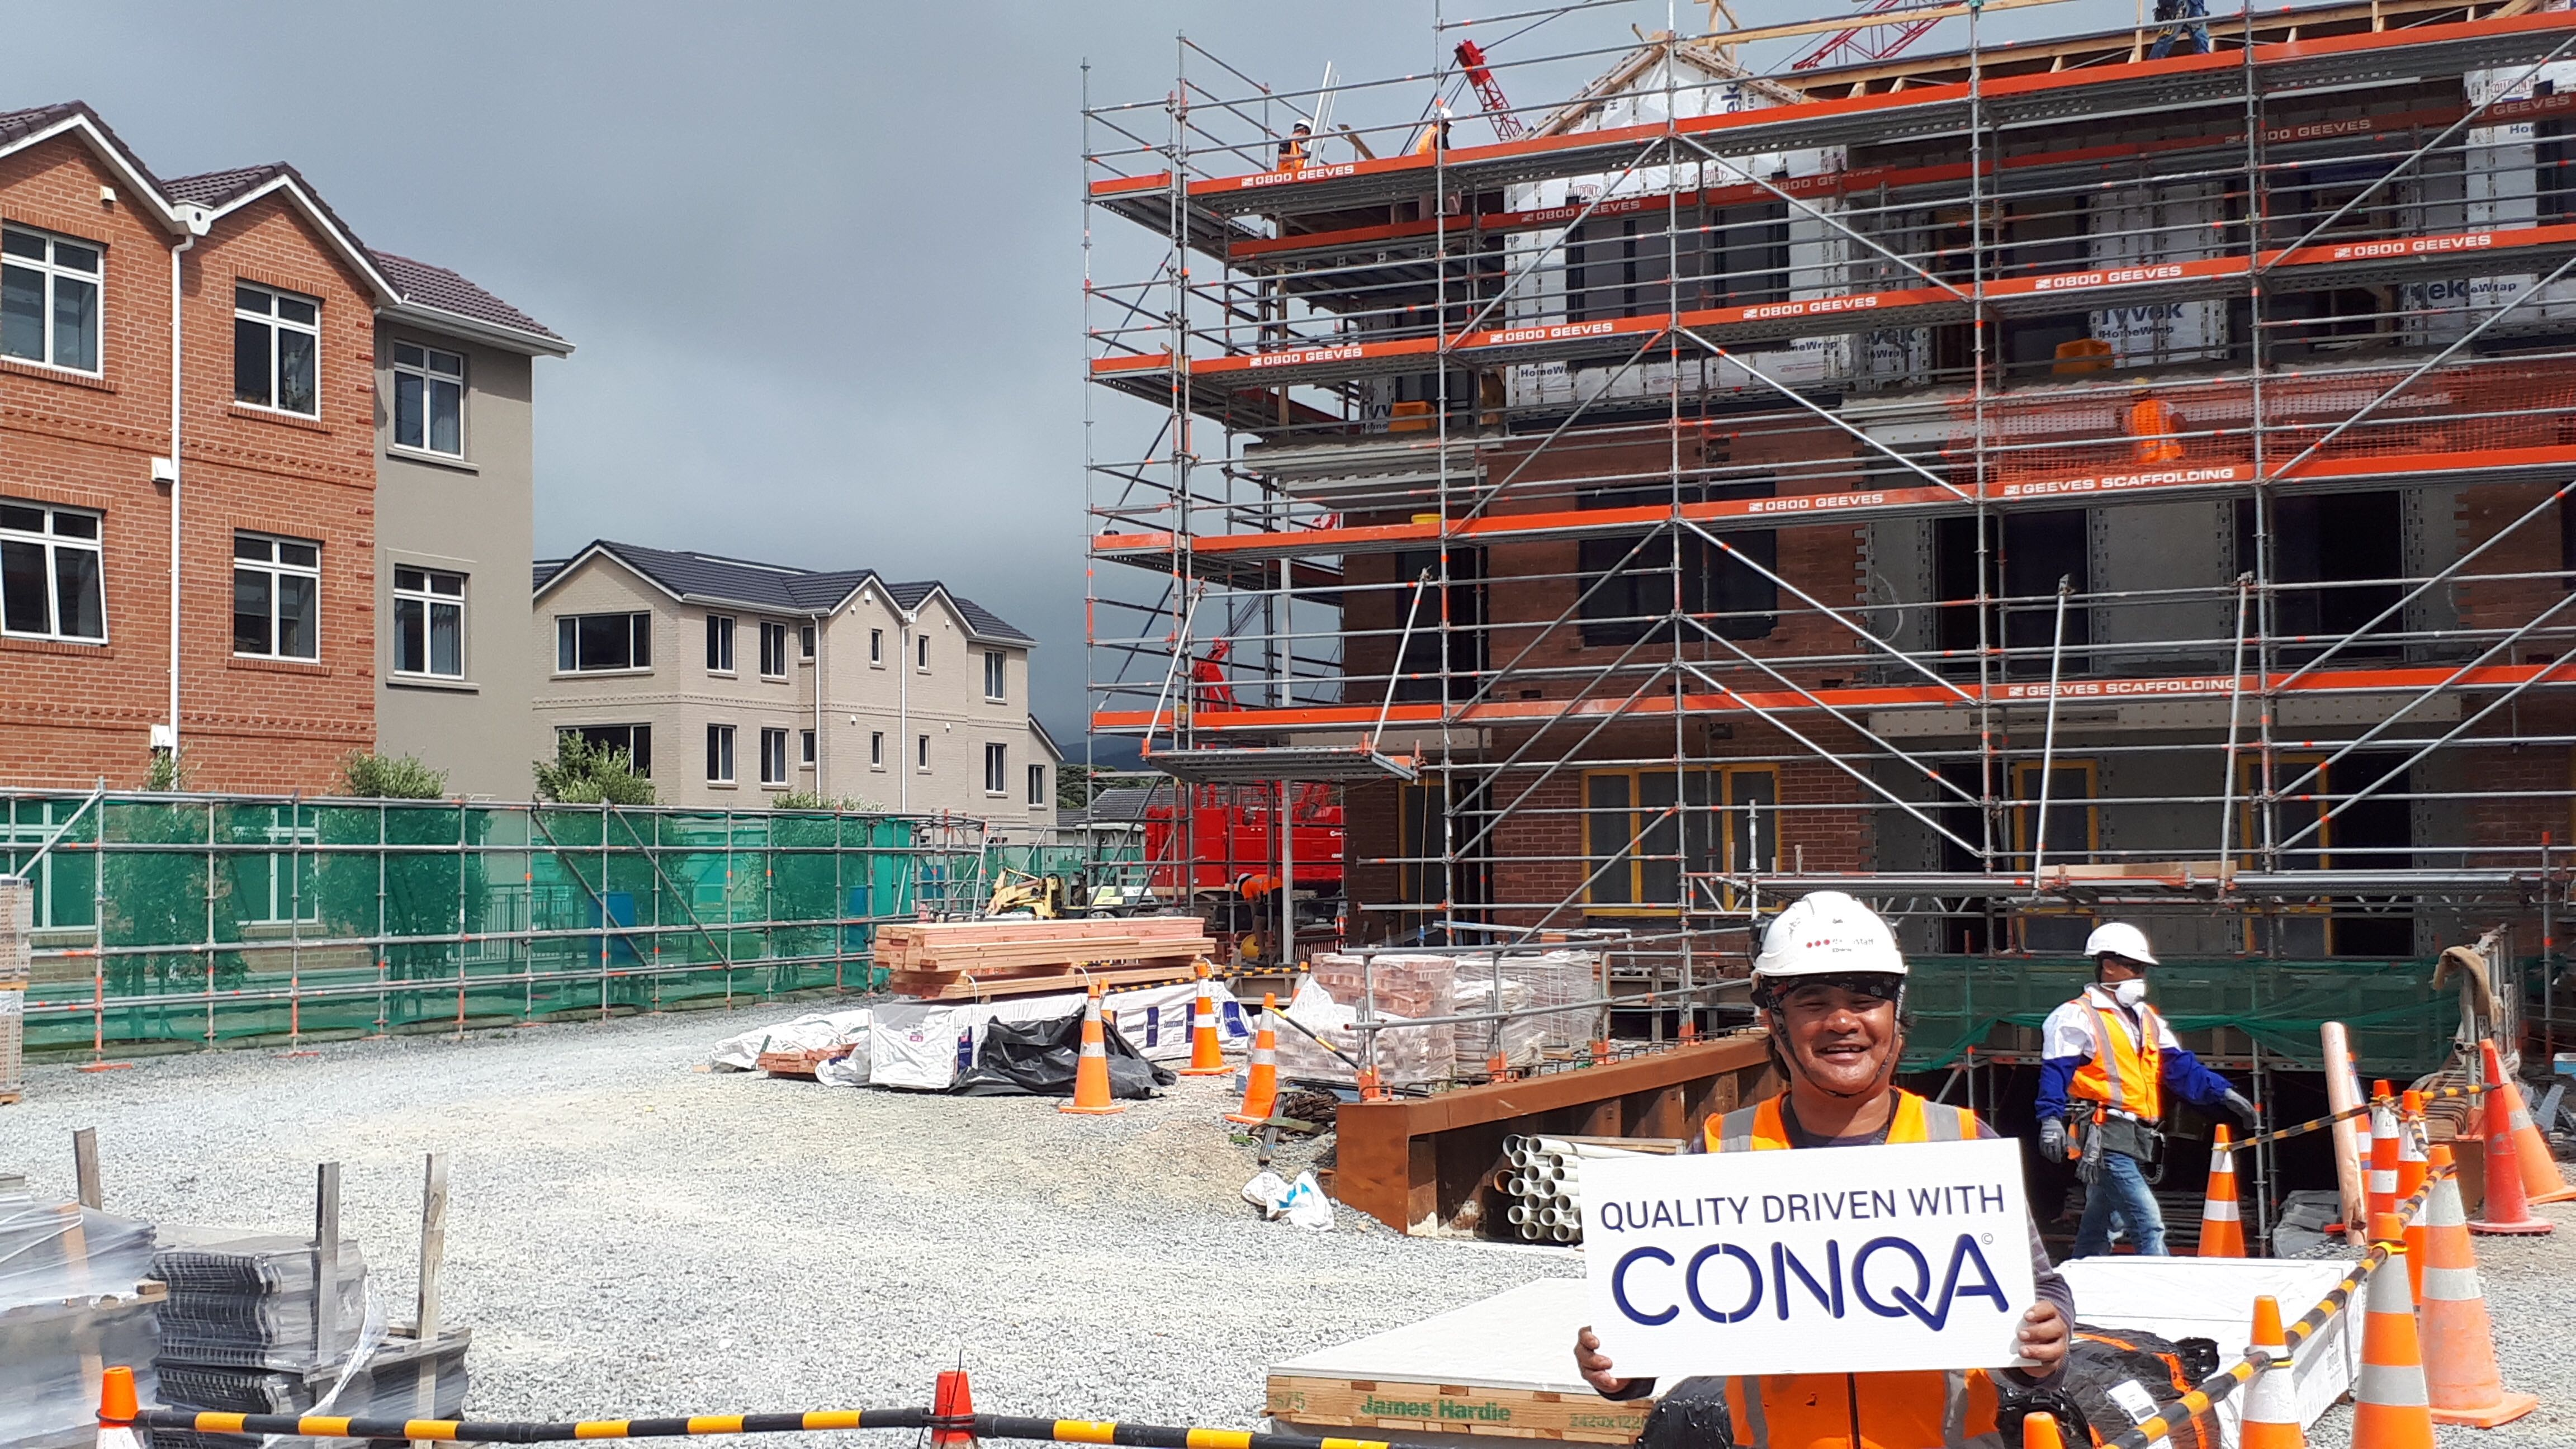 How Ryman Healthcare is leading the way for the construction of aged care infrastructure